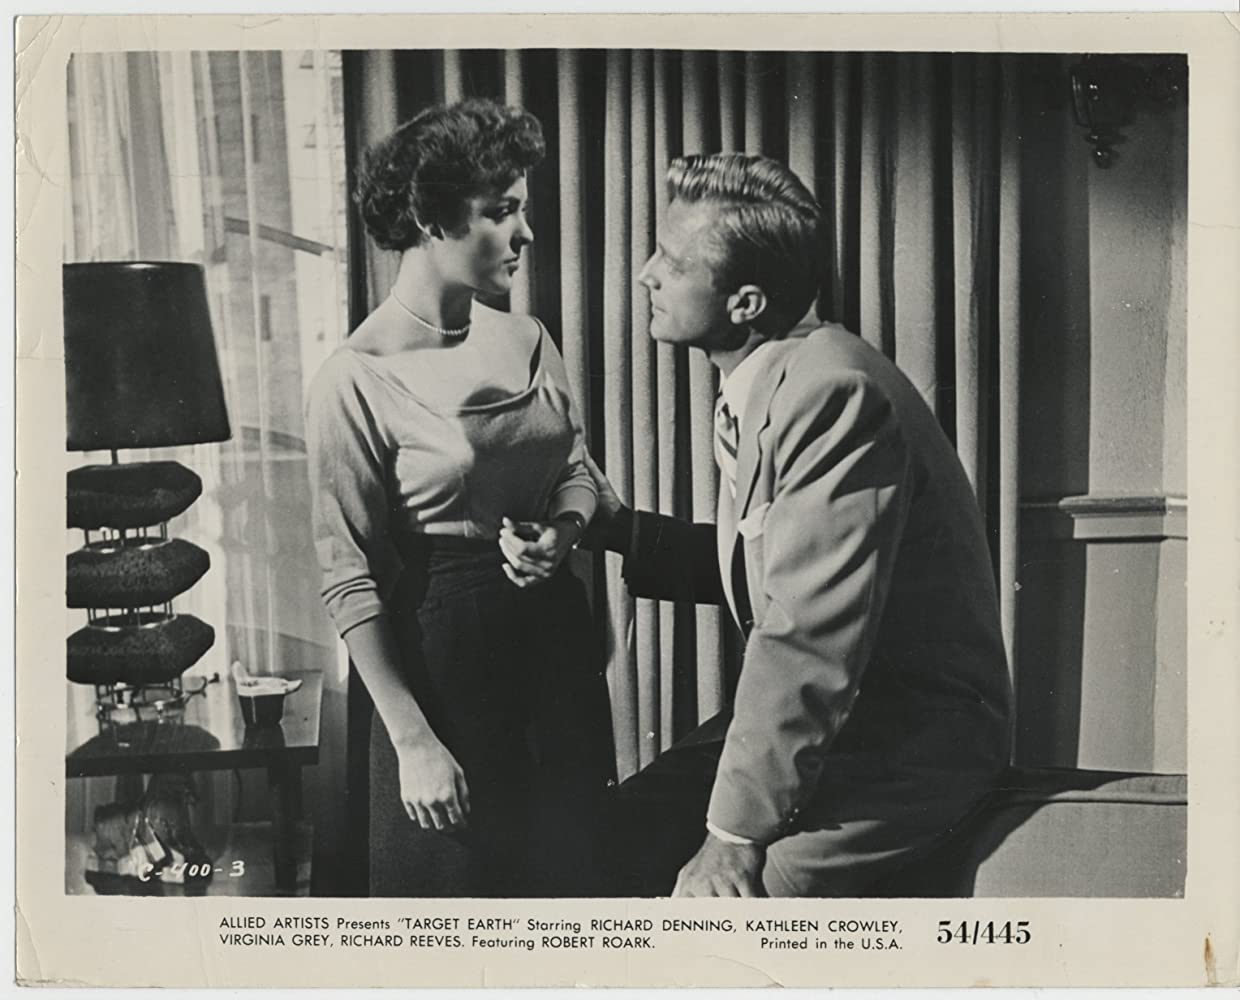 Kathleen Crowley and Richard Denning in Target Earth (1954)